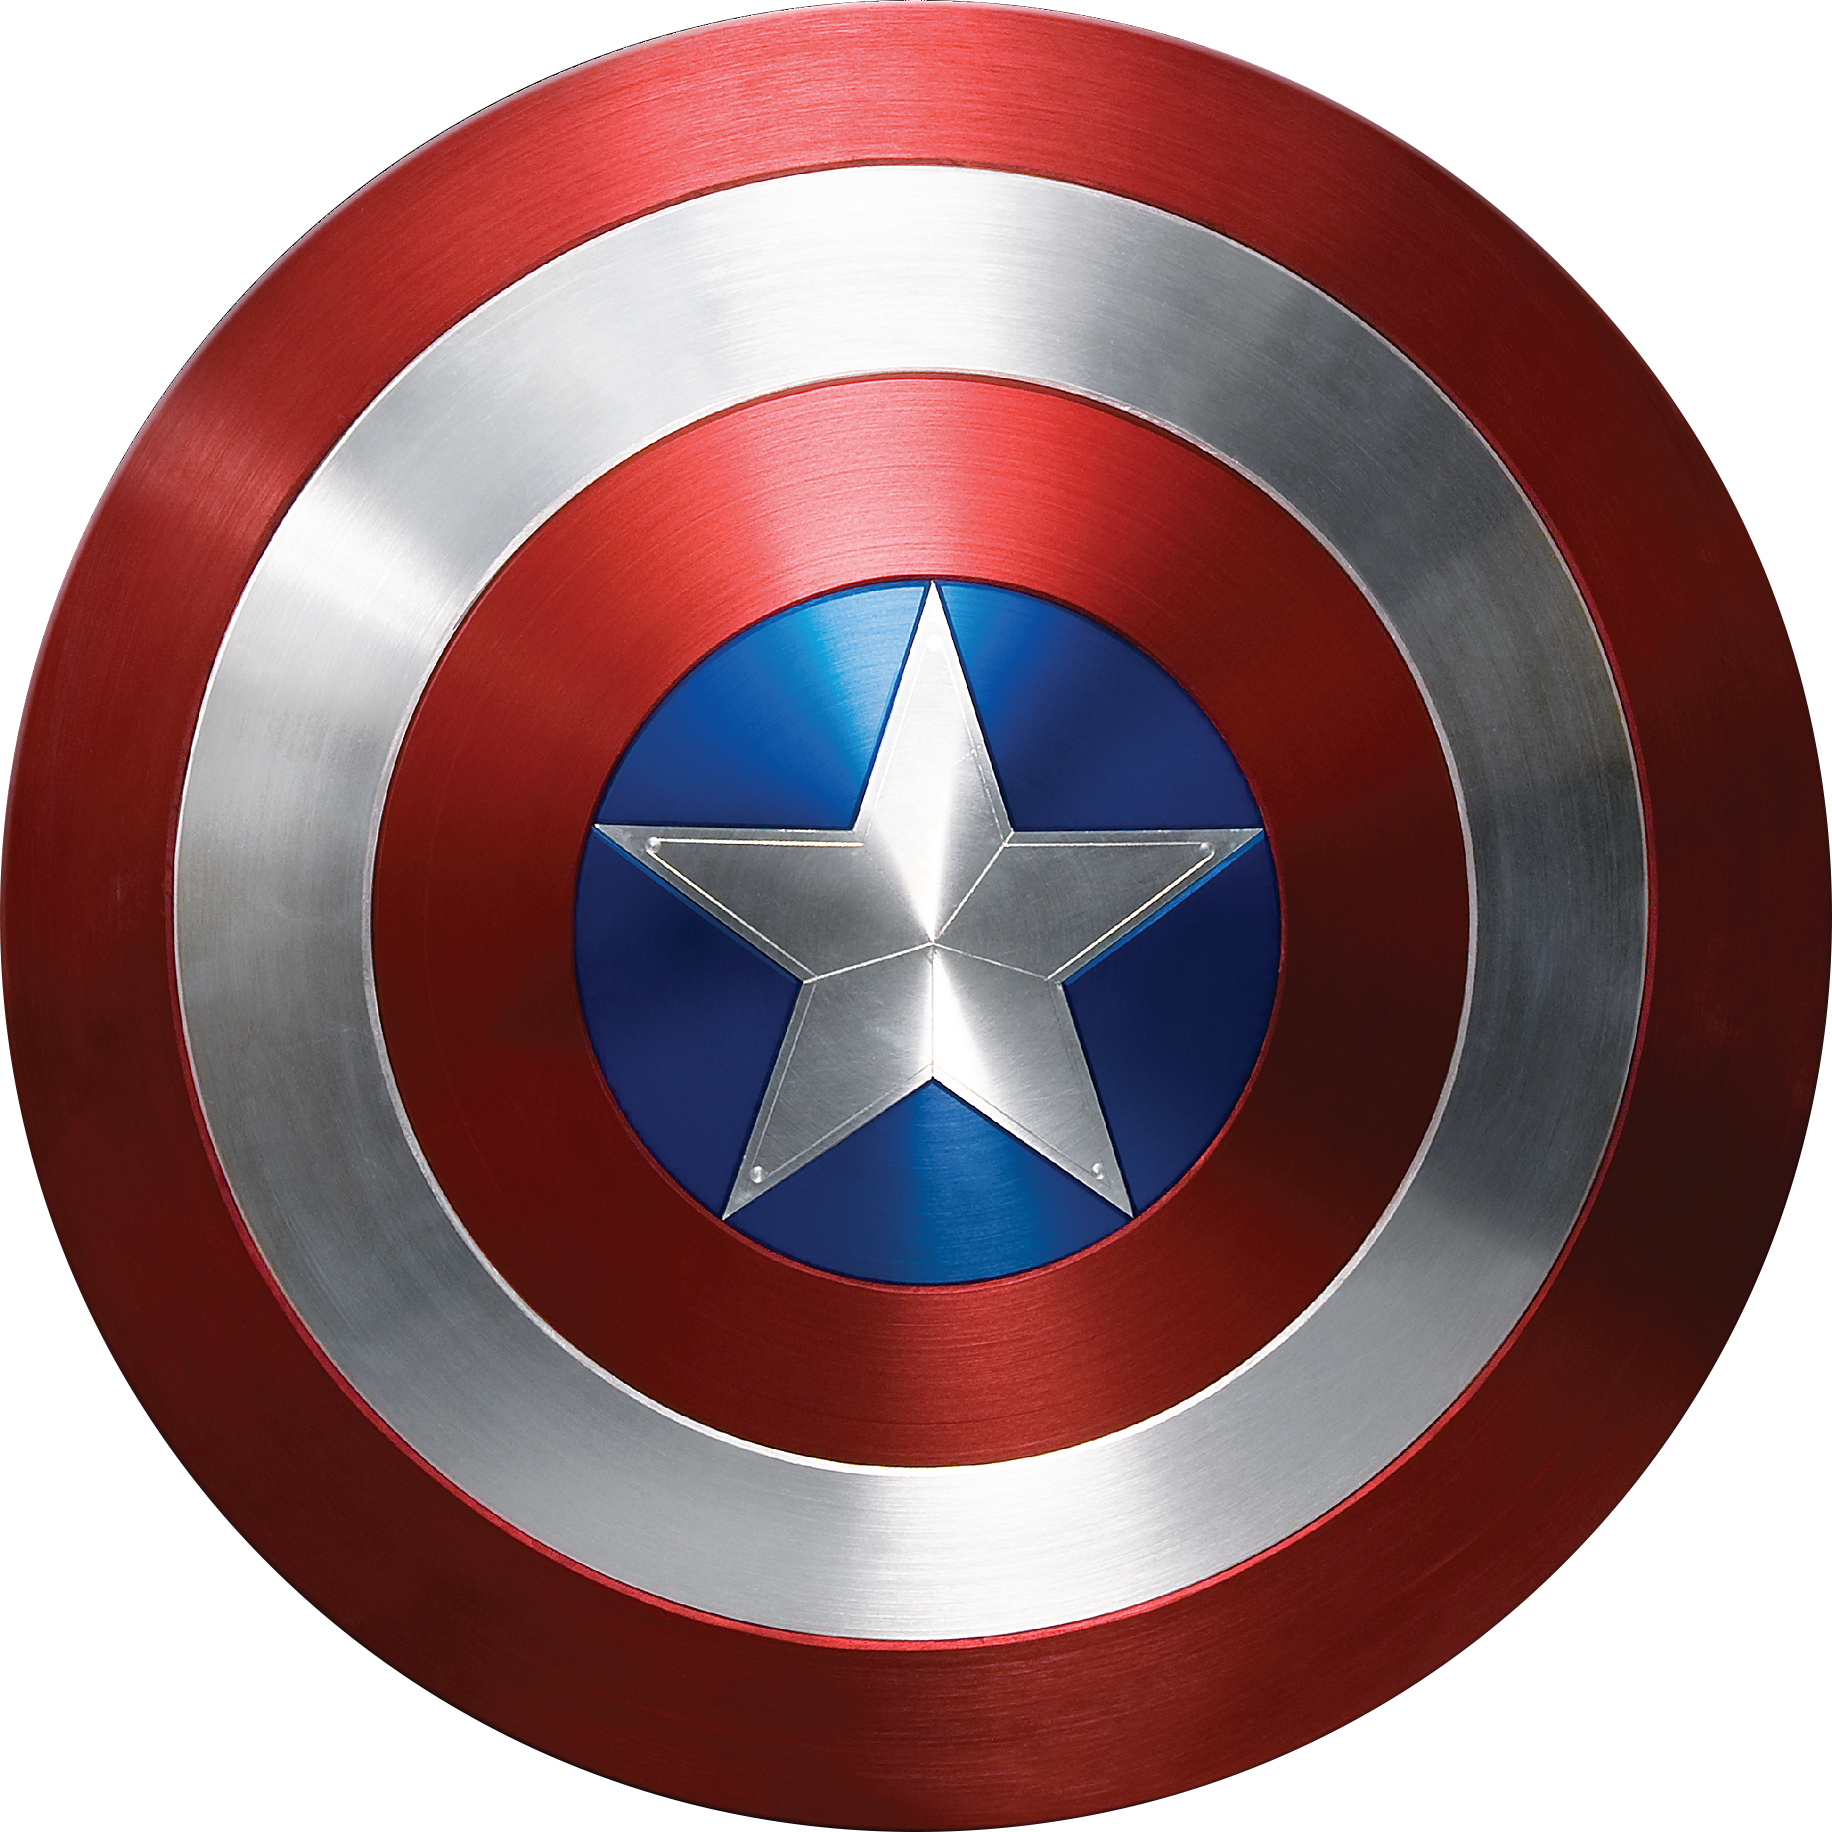 Captain america logo png. Image shield marvel cinematic